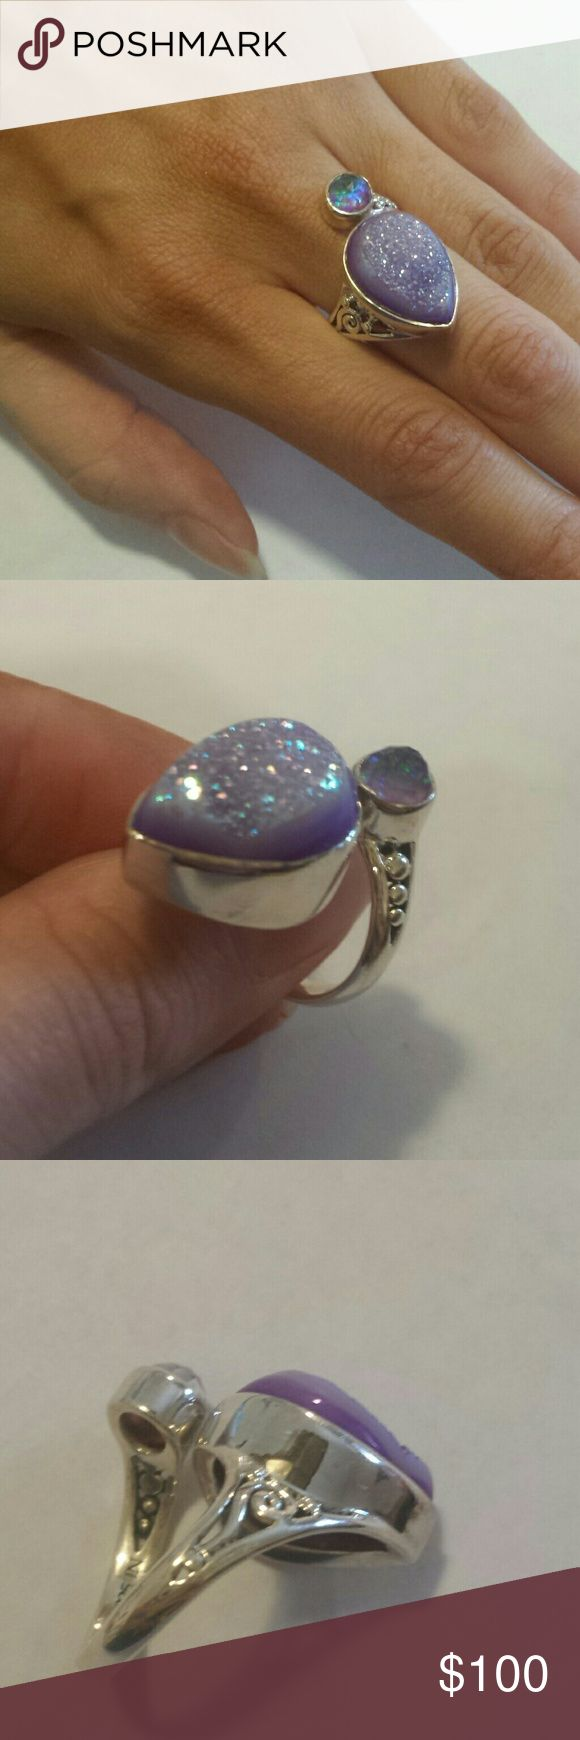 """Genuine lavender Druzy 7 Sterling silver """" gorgeous!  Perfect """""""" make an offer! HSN Jewelry Rings"""